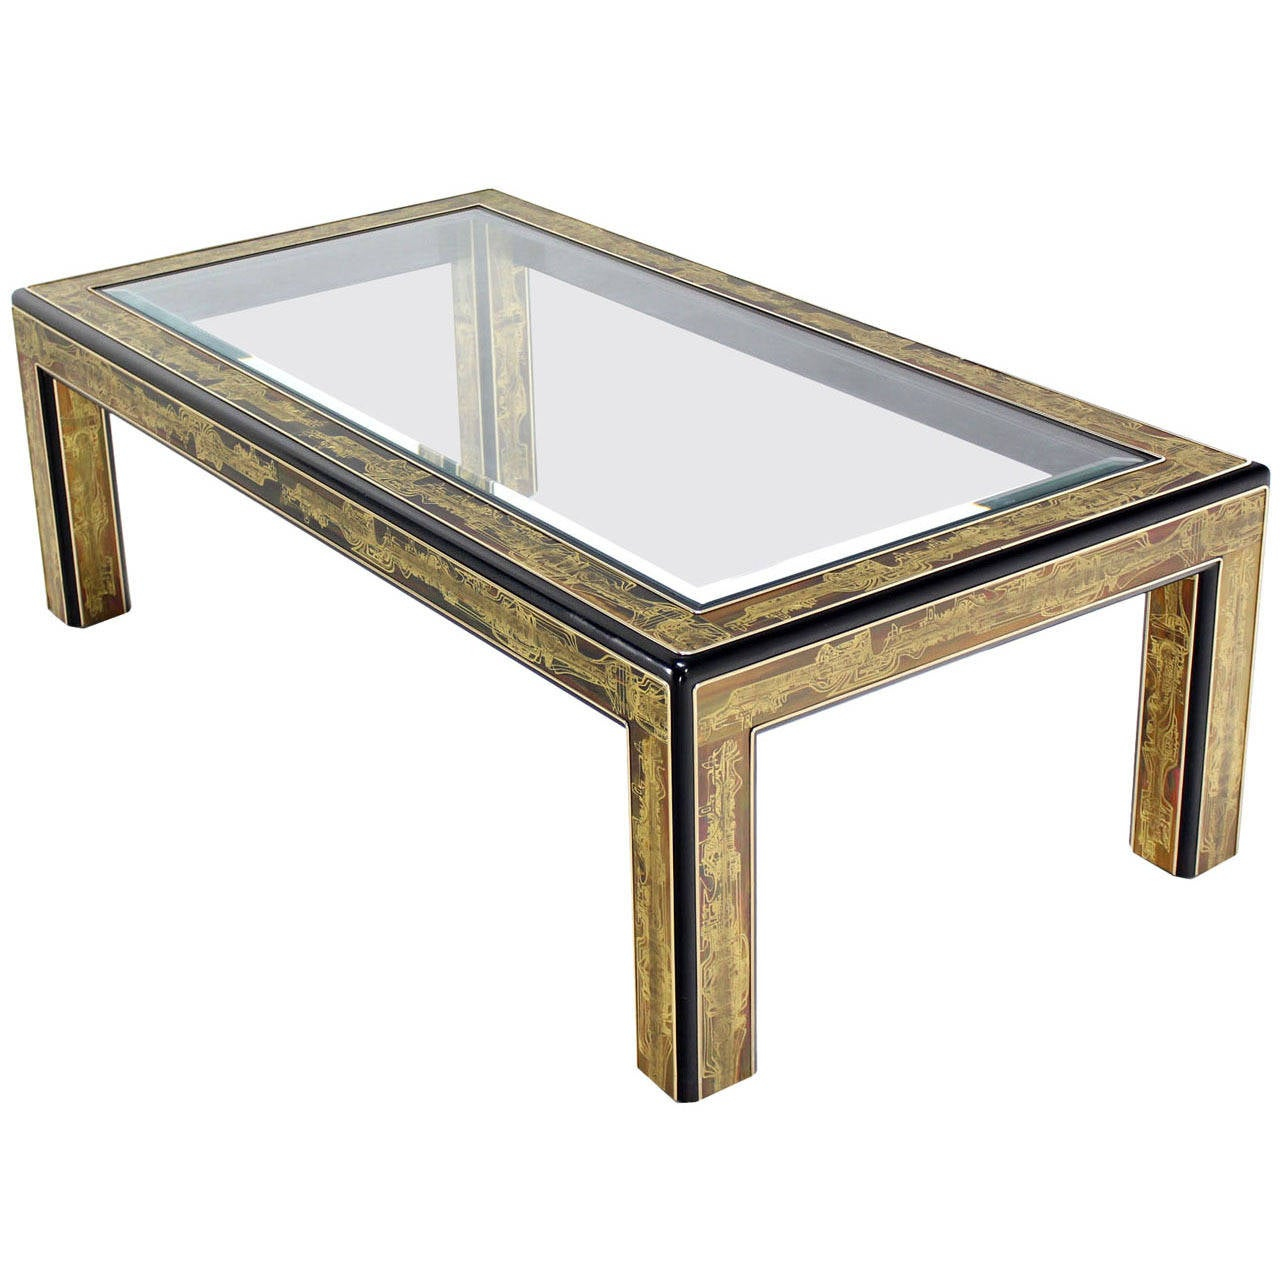 Rectangular glass top brass and wood base coffee table by mastercraft at 1stdibs Glass top for coffee table